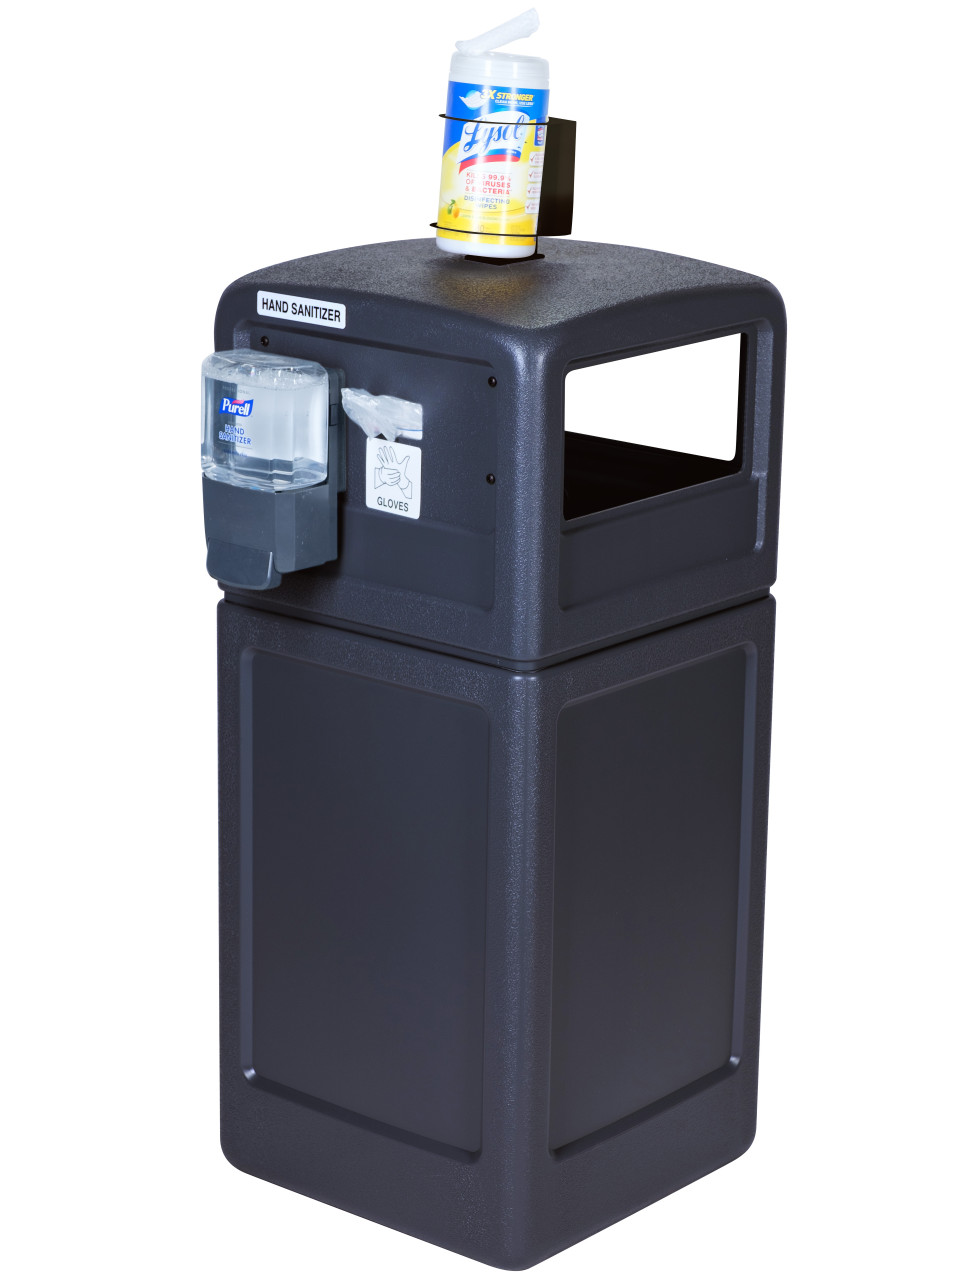 42 Gallon Square Clean Zone PPE Trash Can Black 735101